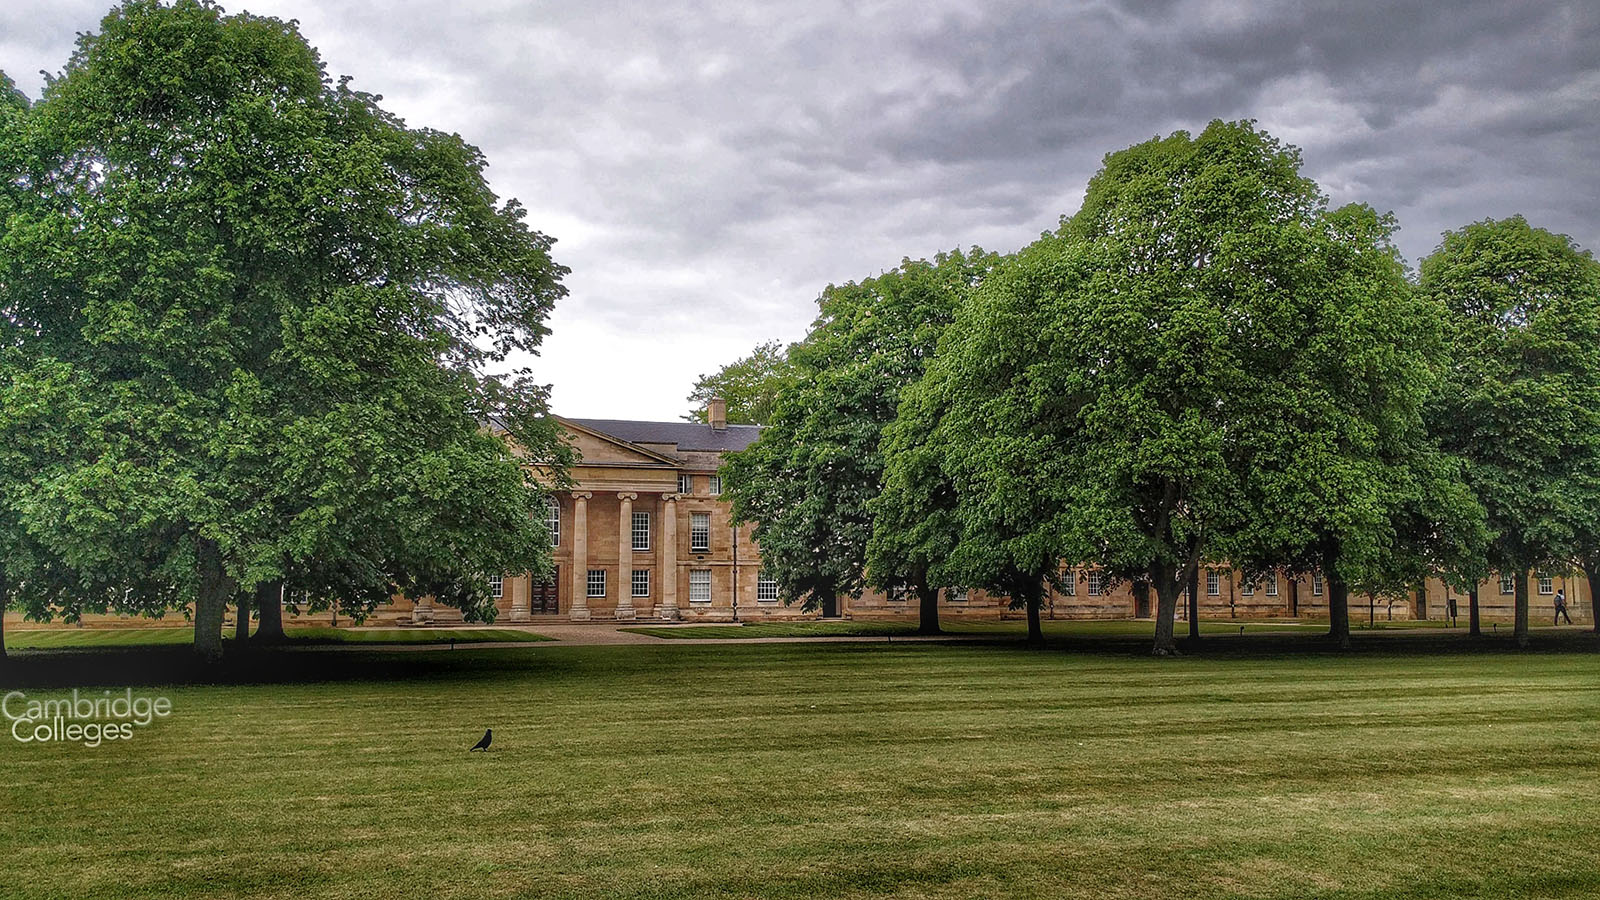 Magnificent trees in the grounds of Downing college